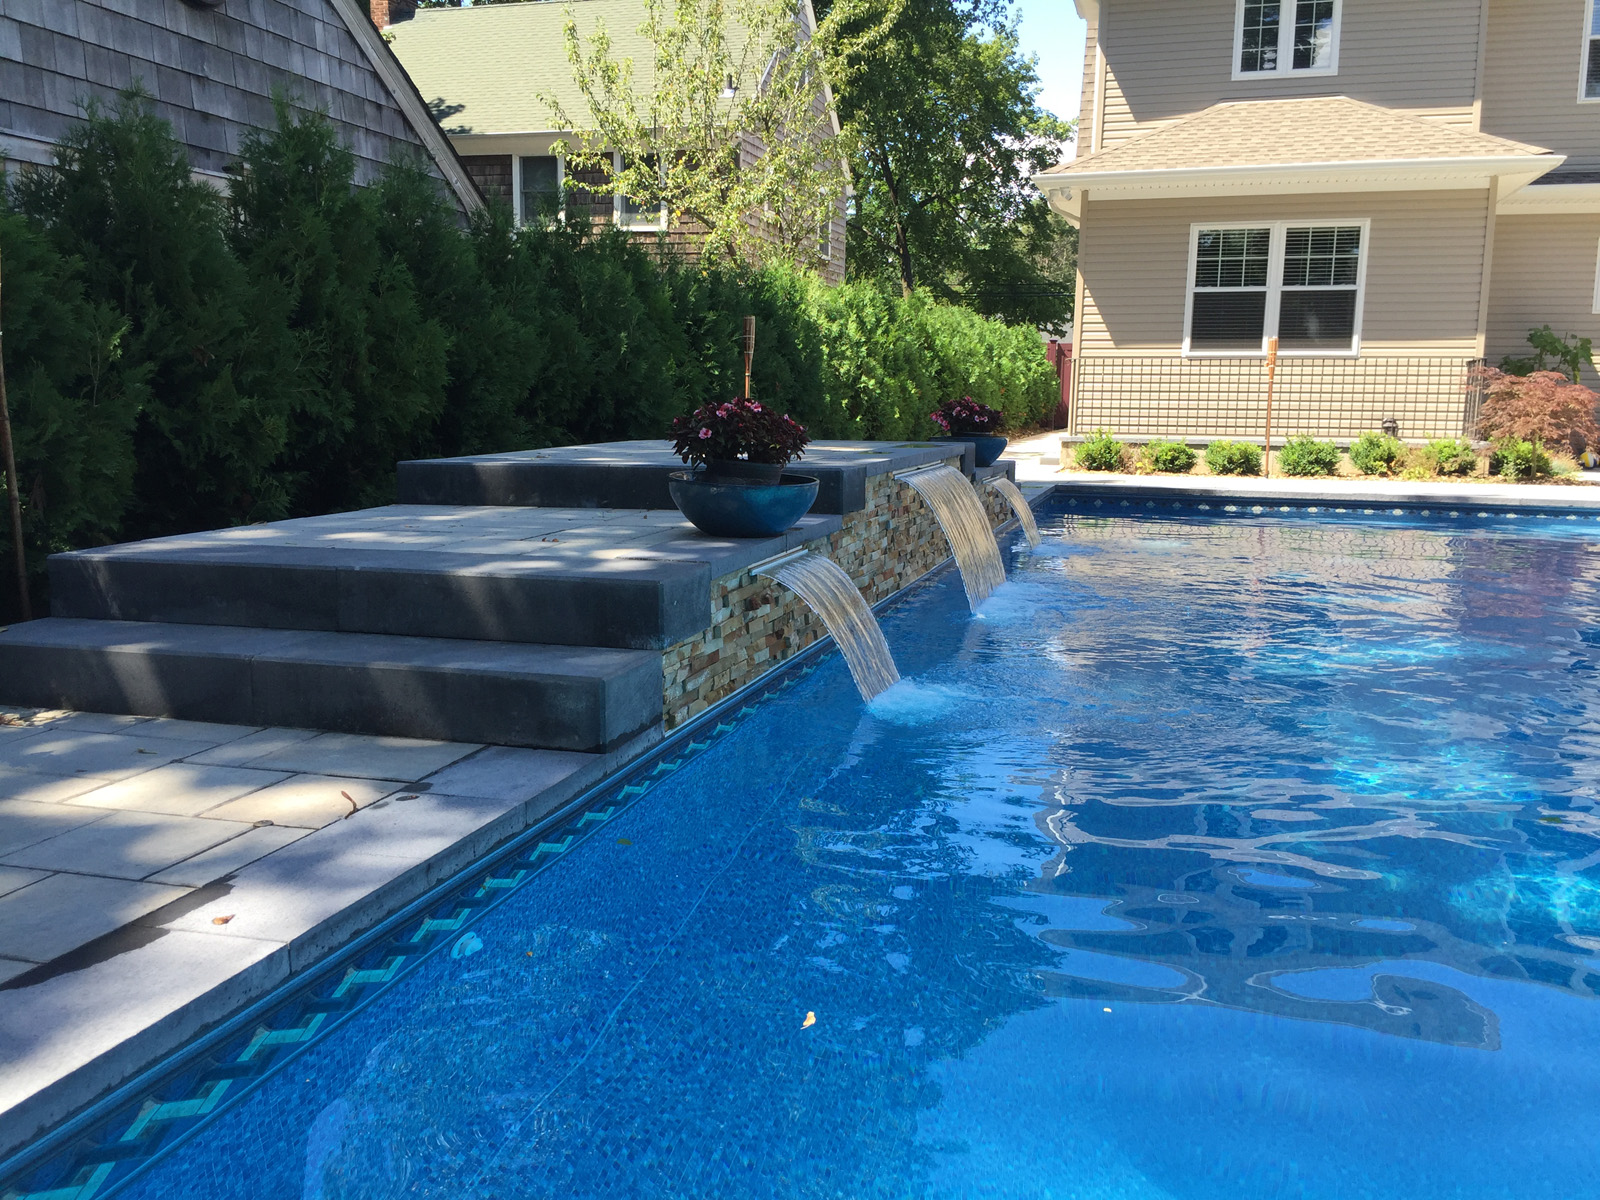 Landscape design with pool spa in Long Island, NY